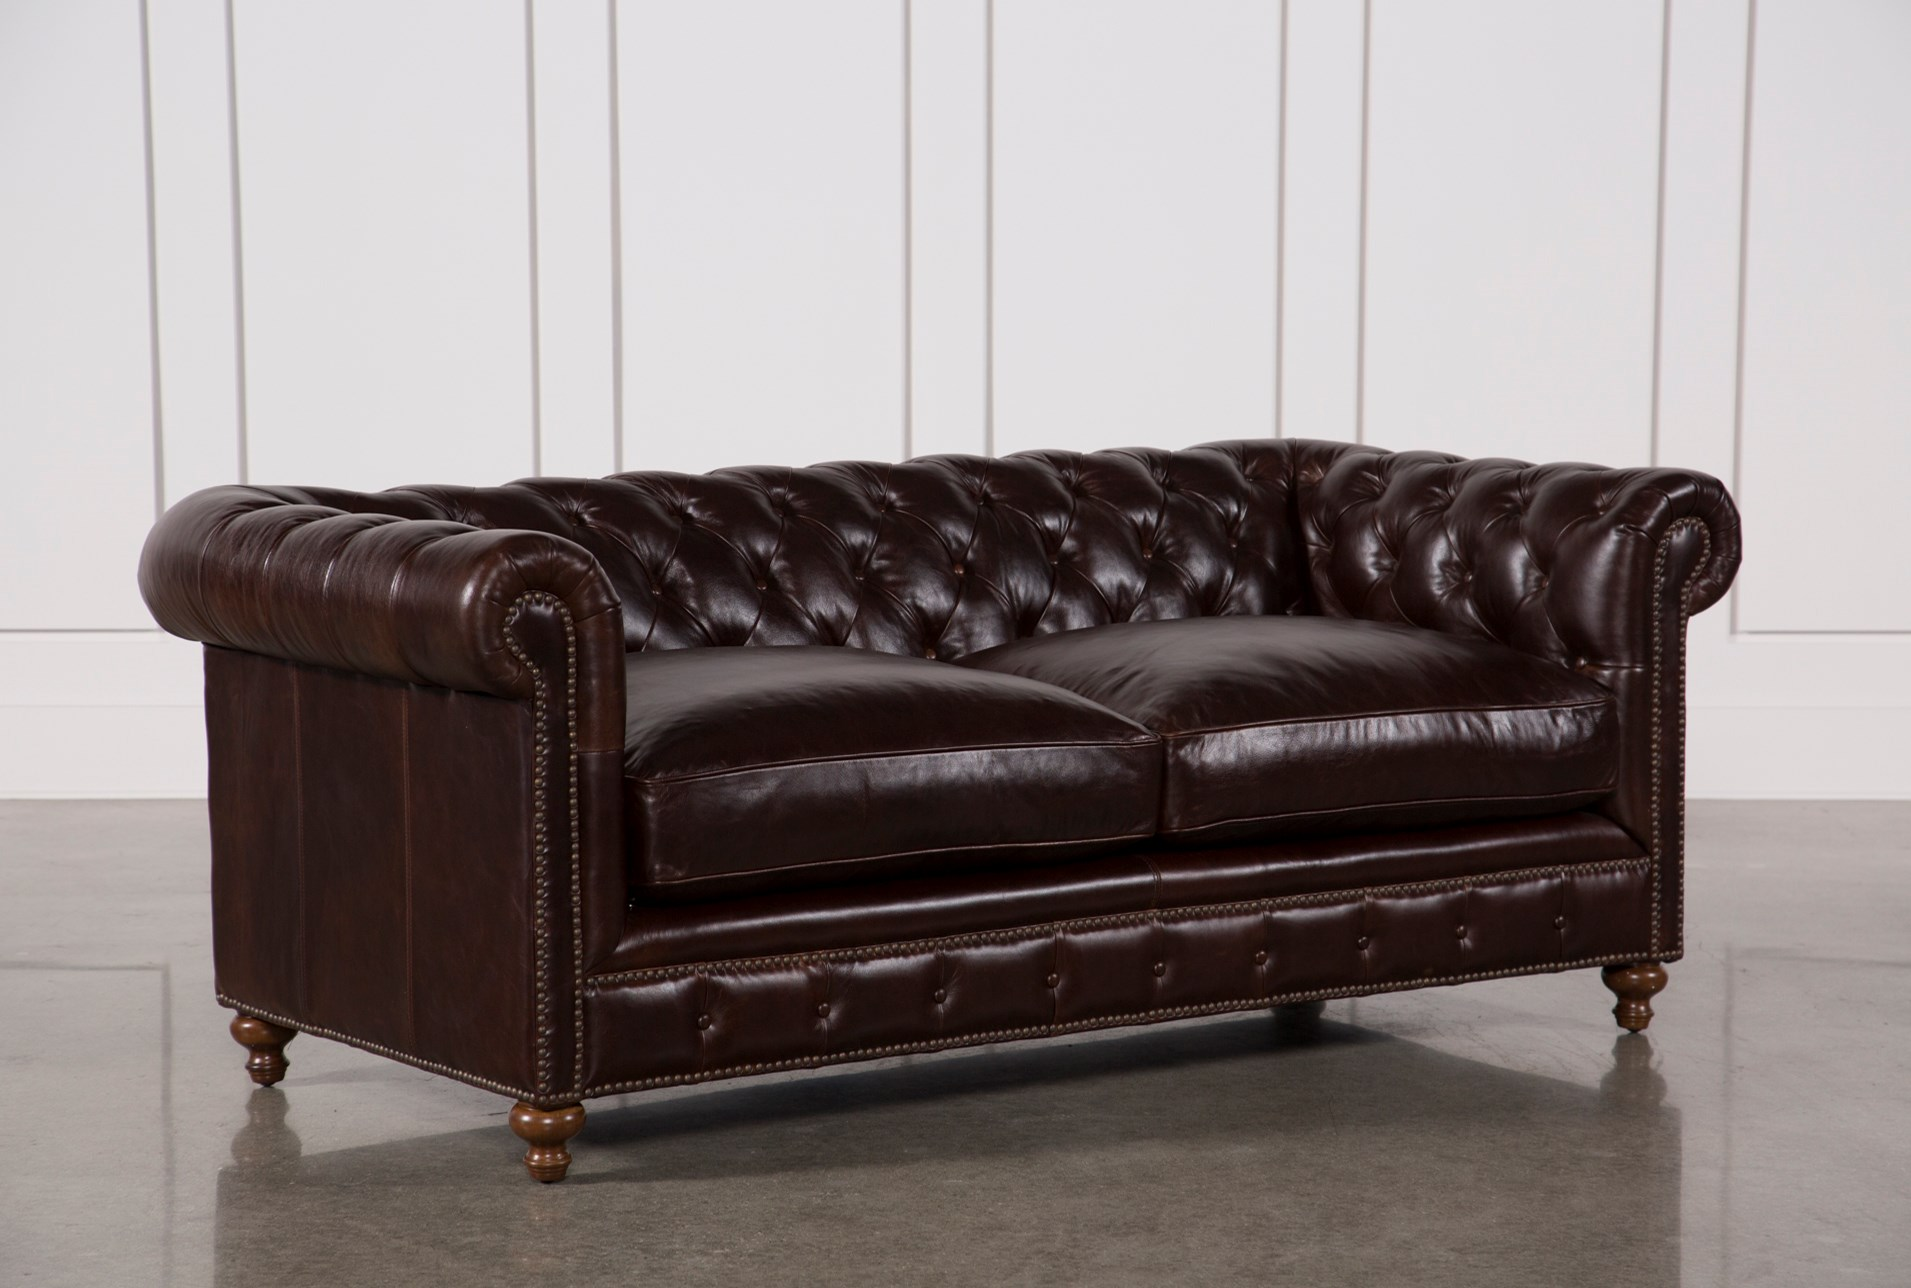 leather sofas leather couches and sofas macy s thesofa. Black Bedroom Furniture Sets. Home Design Ideas